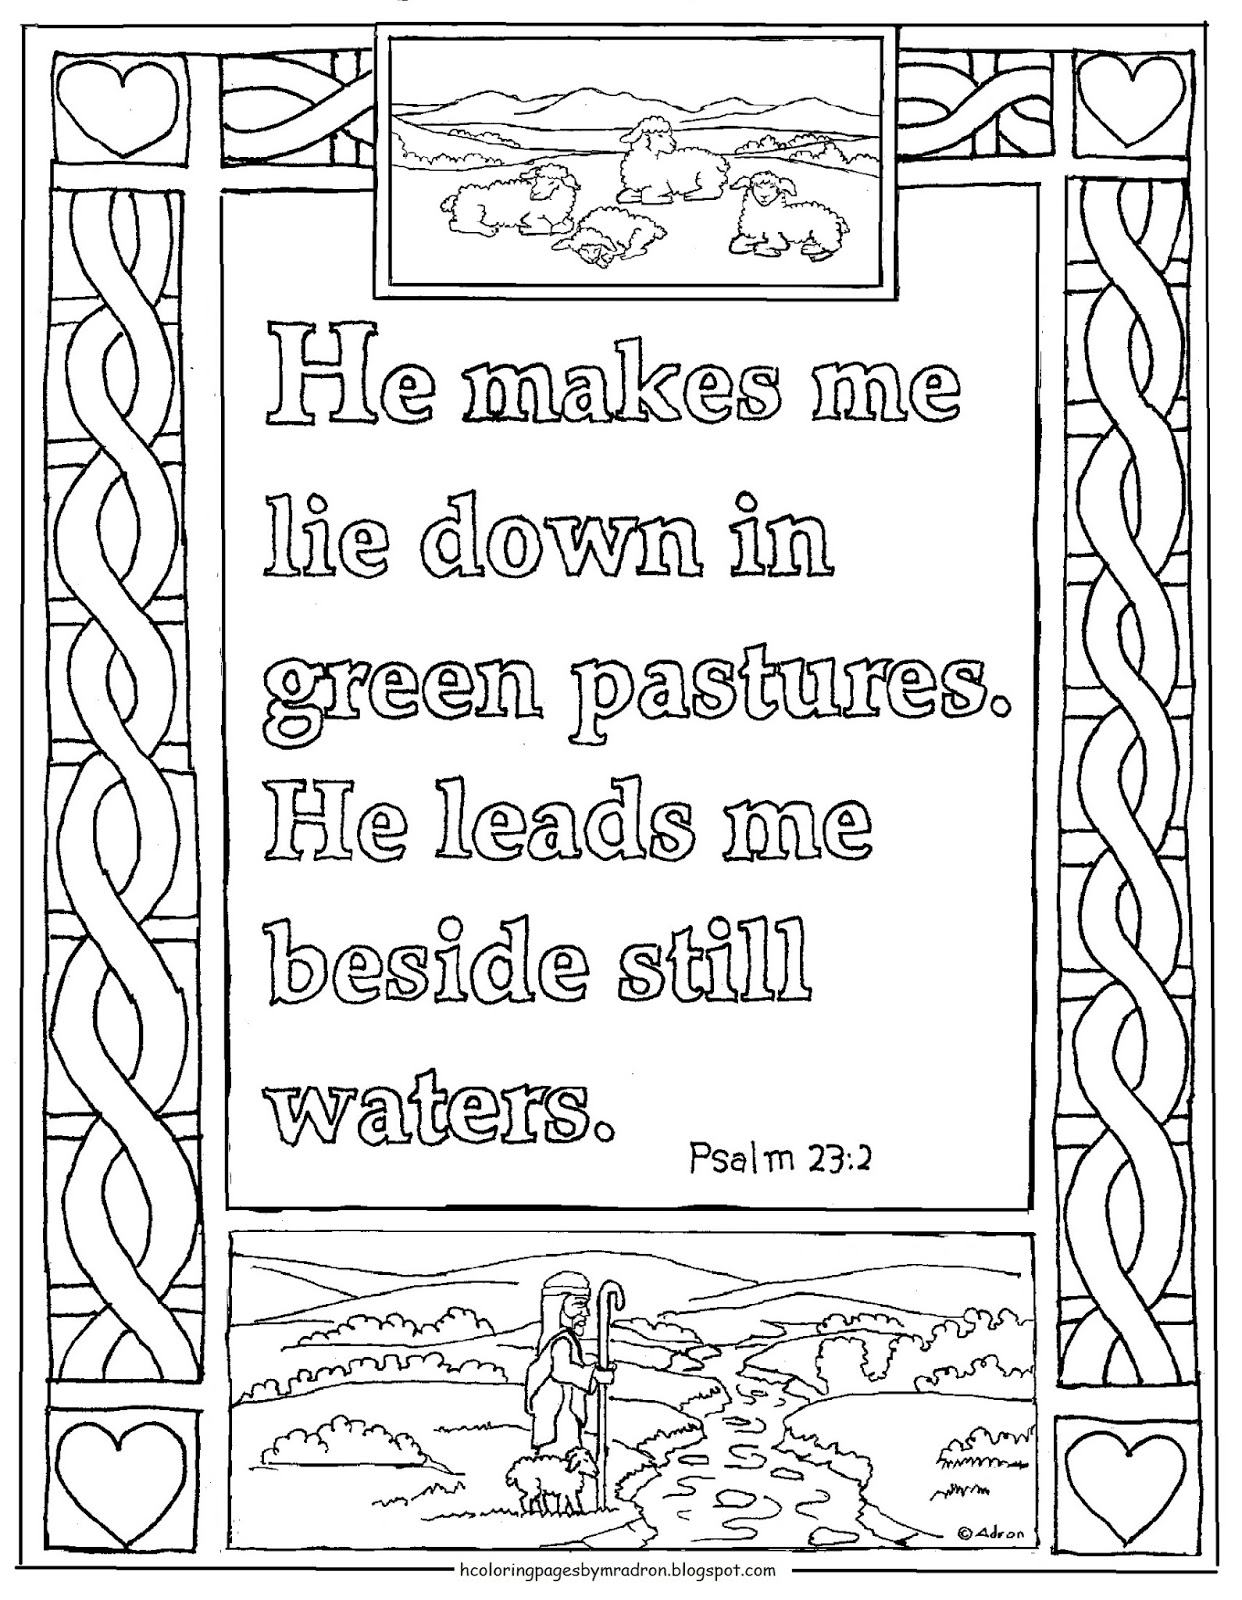 psalm 23 coloring page - printable psalm 232 coloring page green